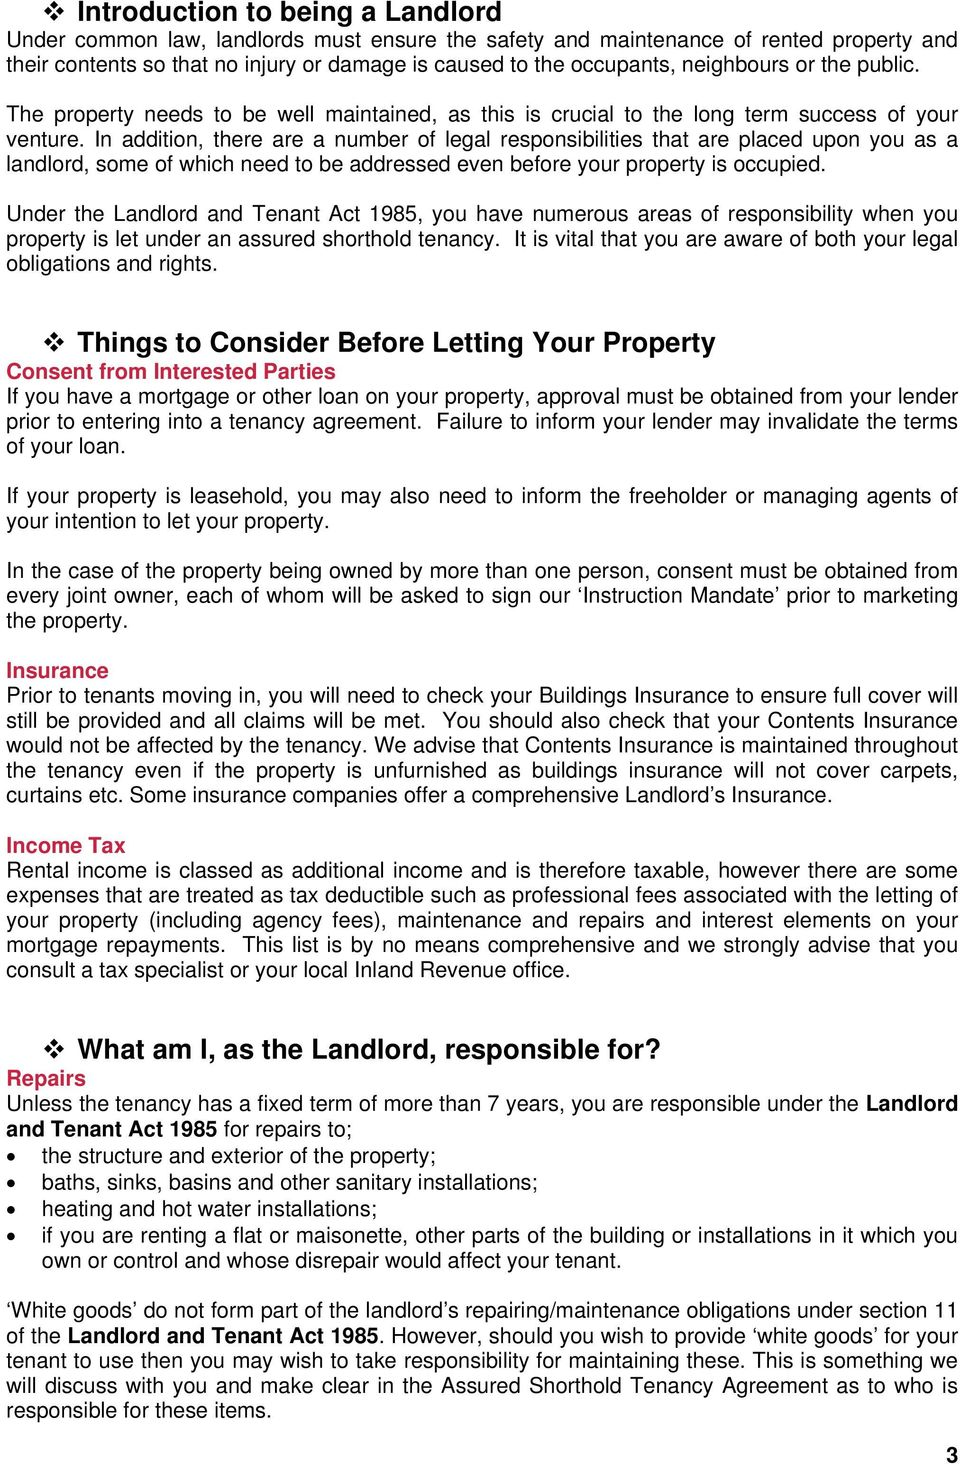 In addition, there are a number of legal responsibilities that are placed upon you as a landlord, some of which need to be addressed even before your property is occupied.